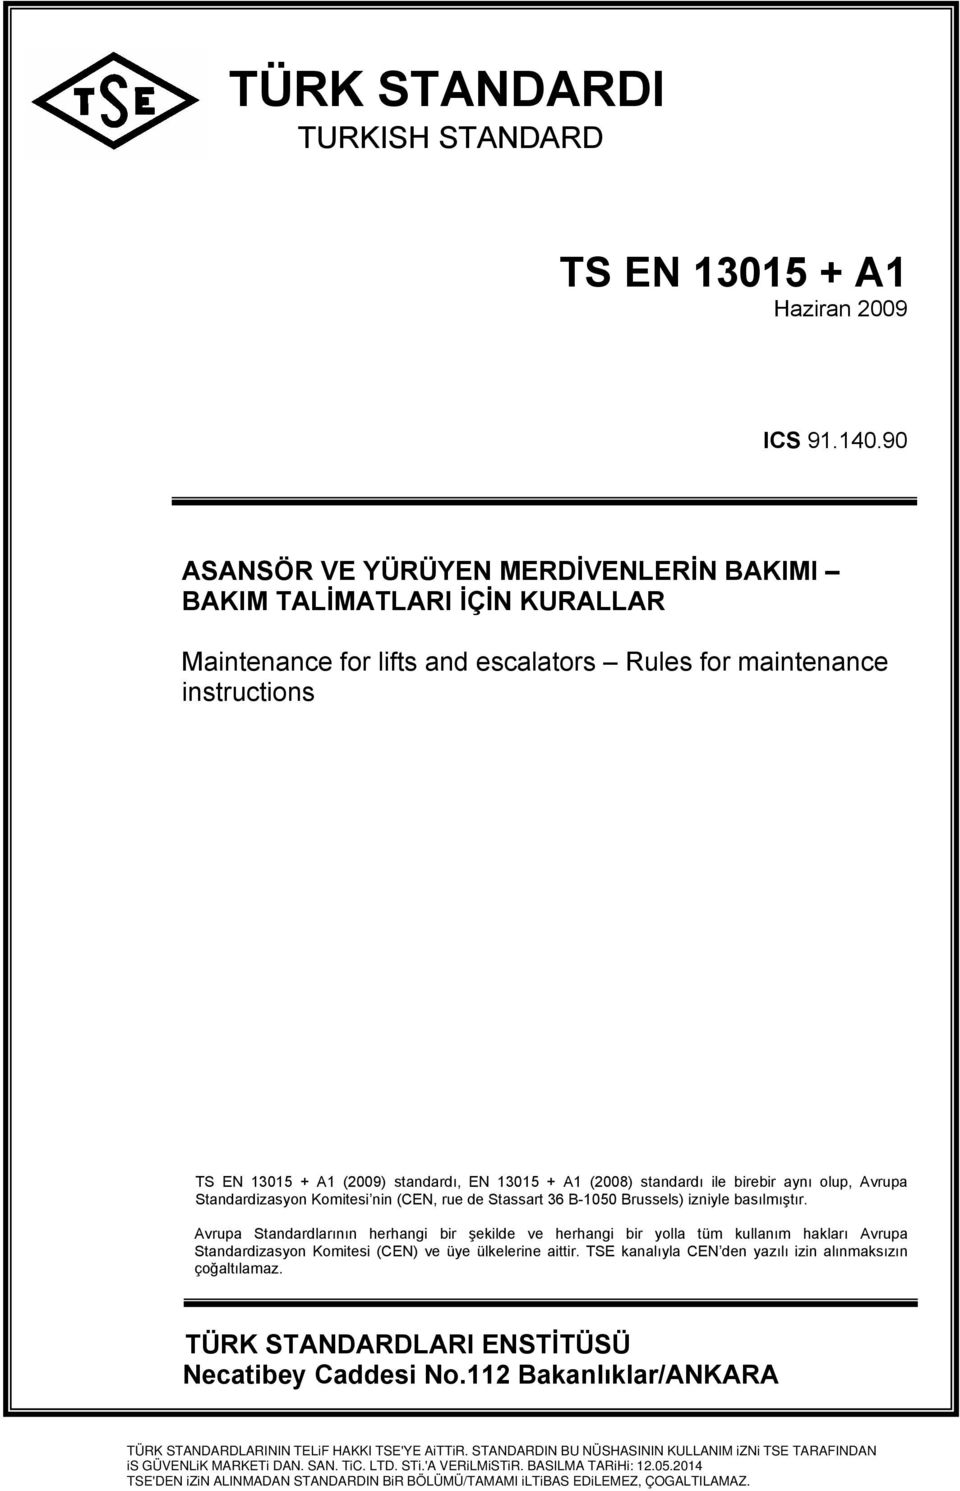 Maintenance for lifts and escalators Rules for maintenance instructions TS EN 13015 + A1 (2009) standardı, EN 13015 + A1 (2008) standardı ile birebir aynı olup, Avrupa Standardizasyon